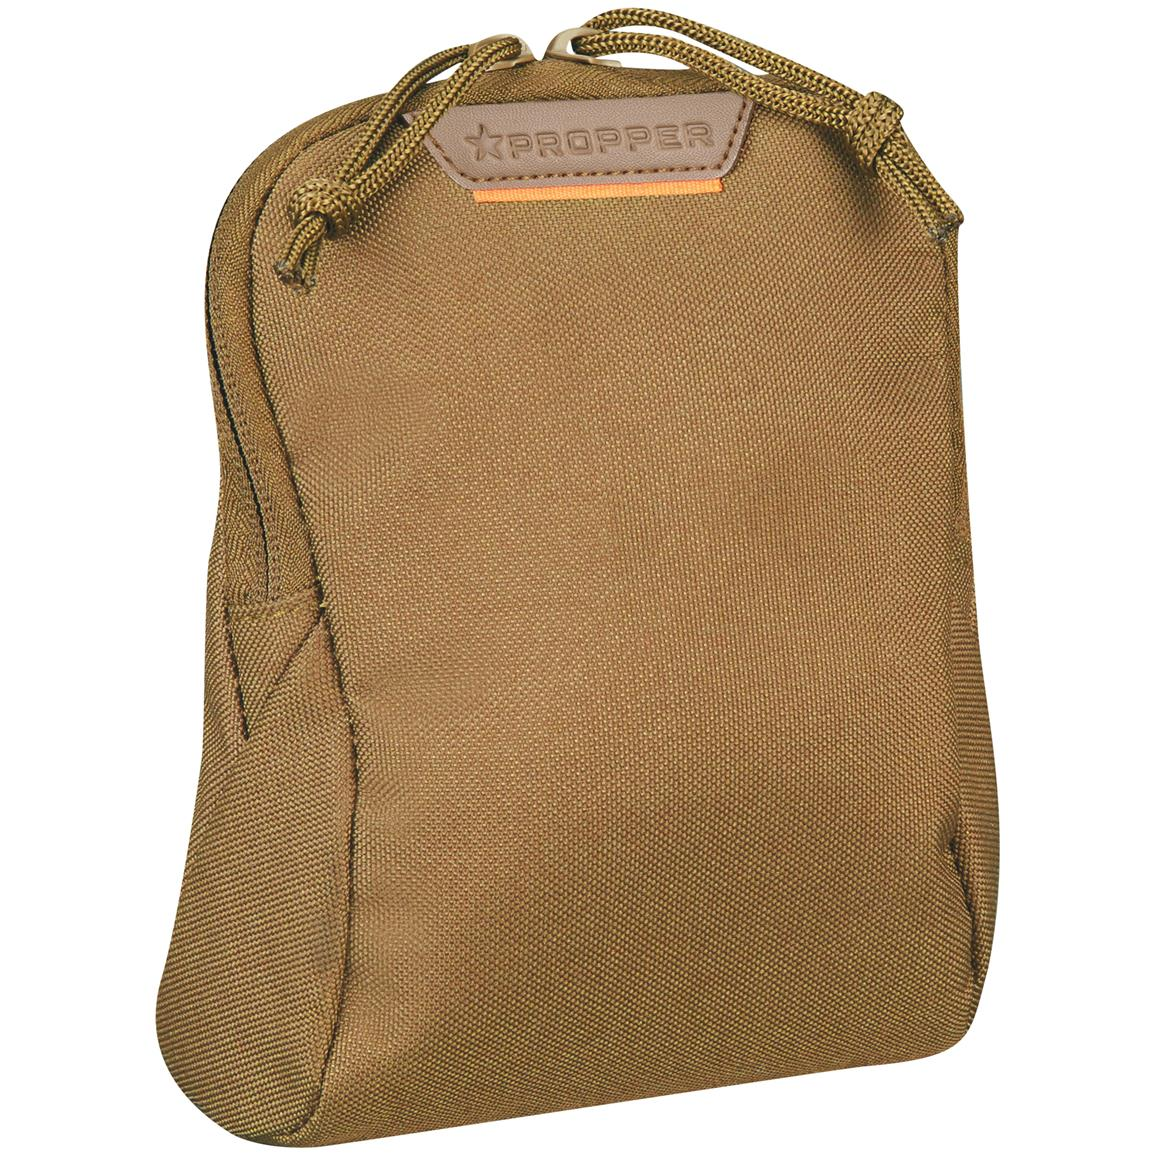 "Propper 7"" x 6"" Media Pouch with MOLLE, Coyote"